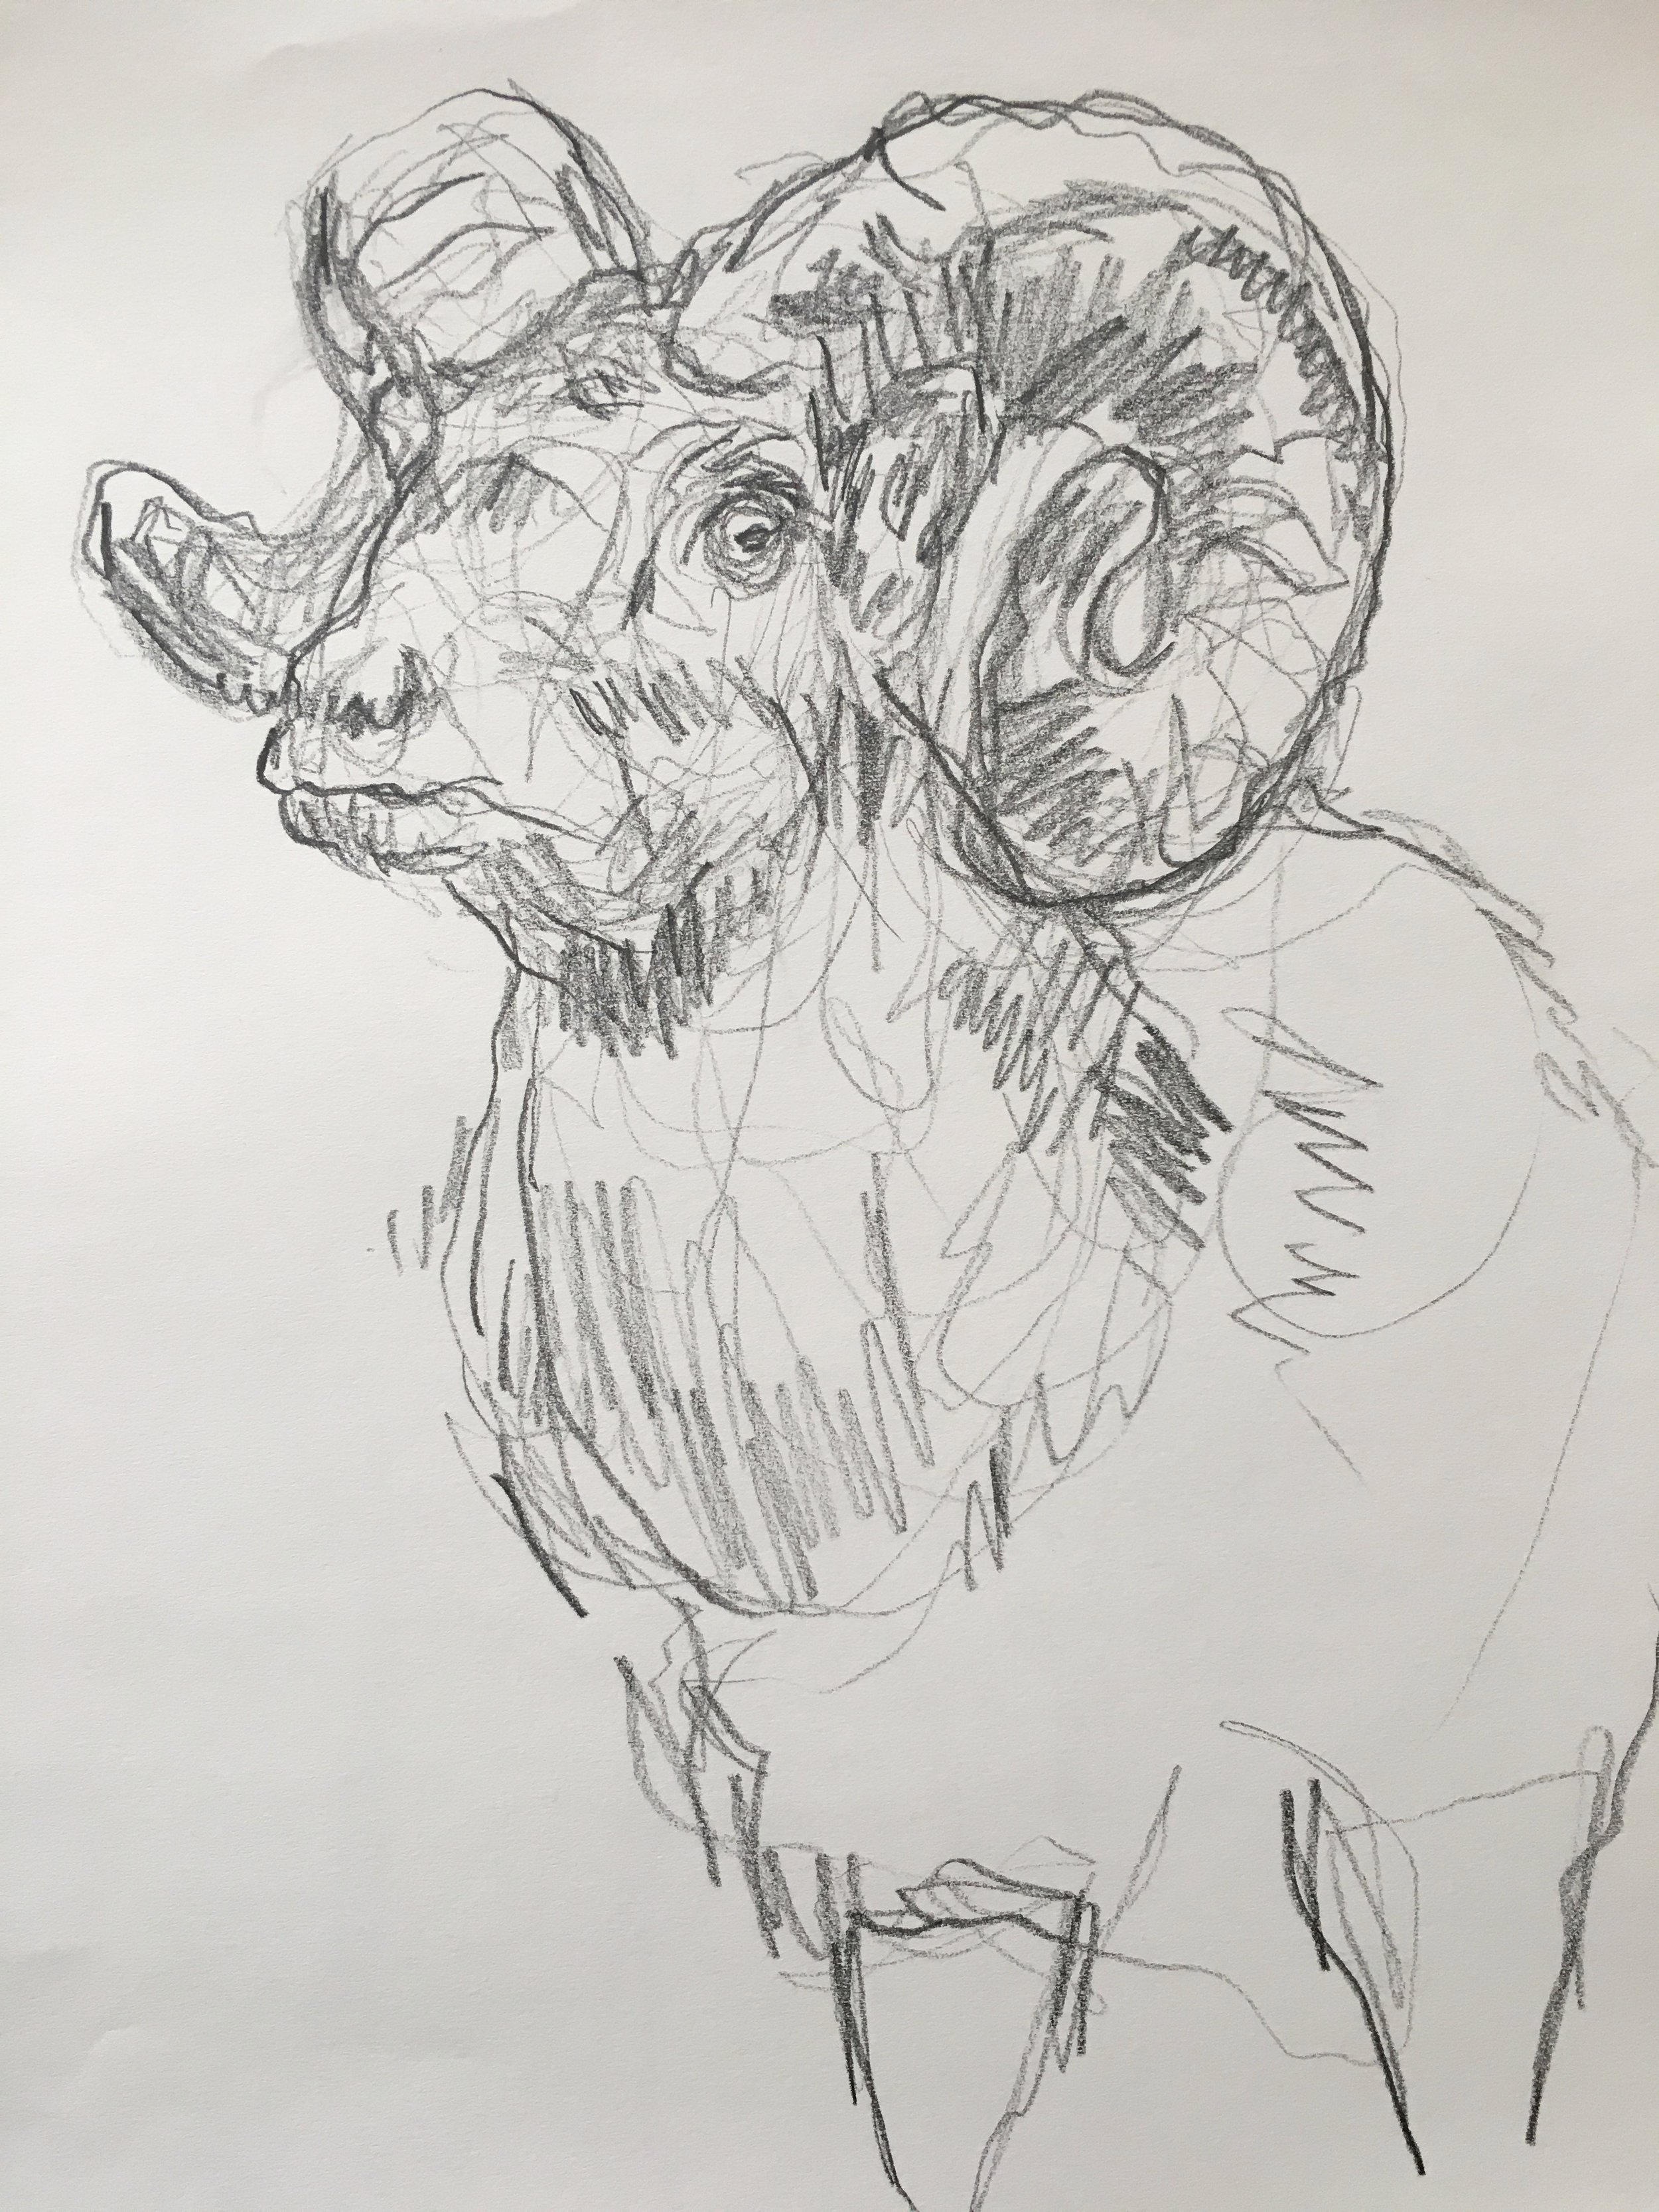 Ram / Yale Peabody Museum, New Haven CT